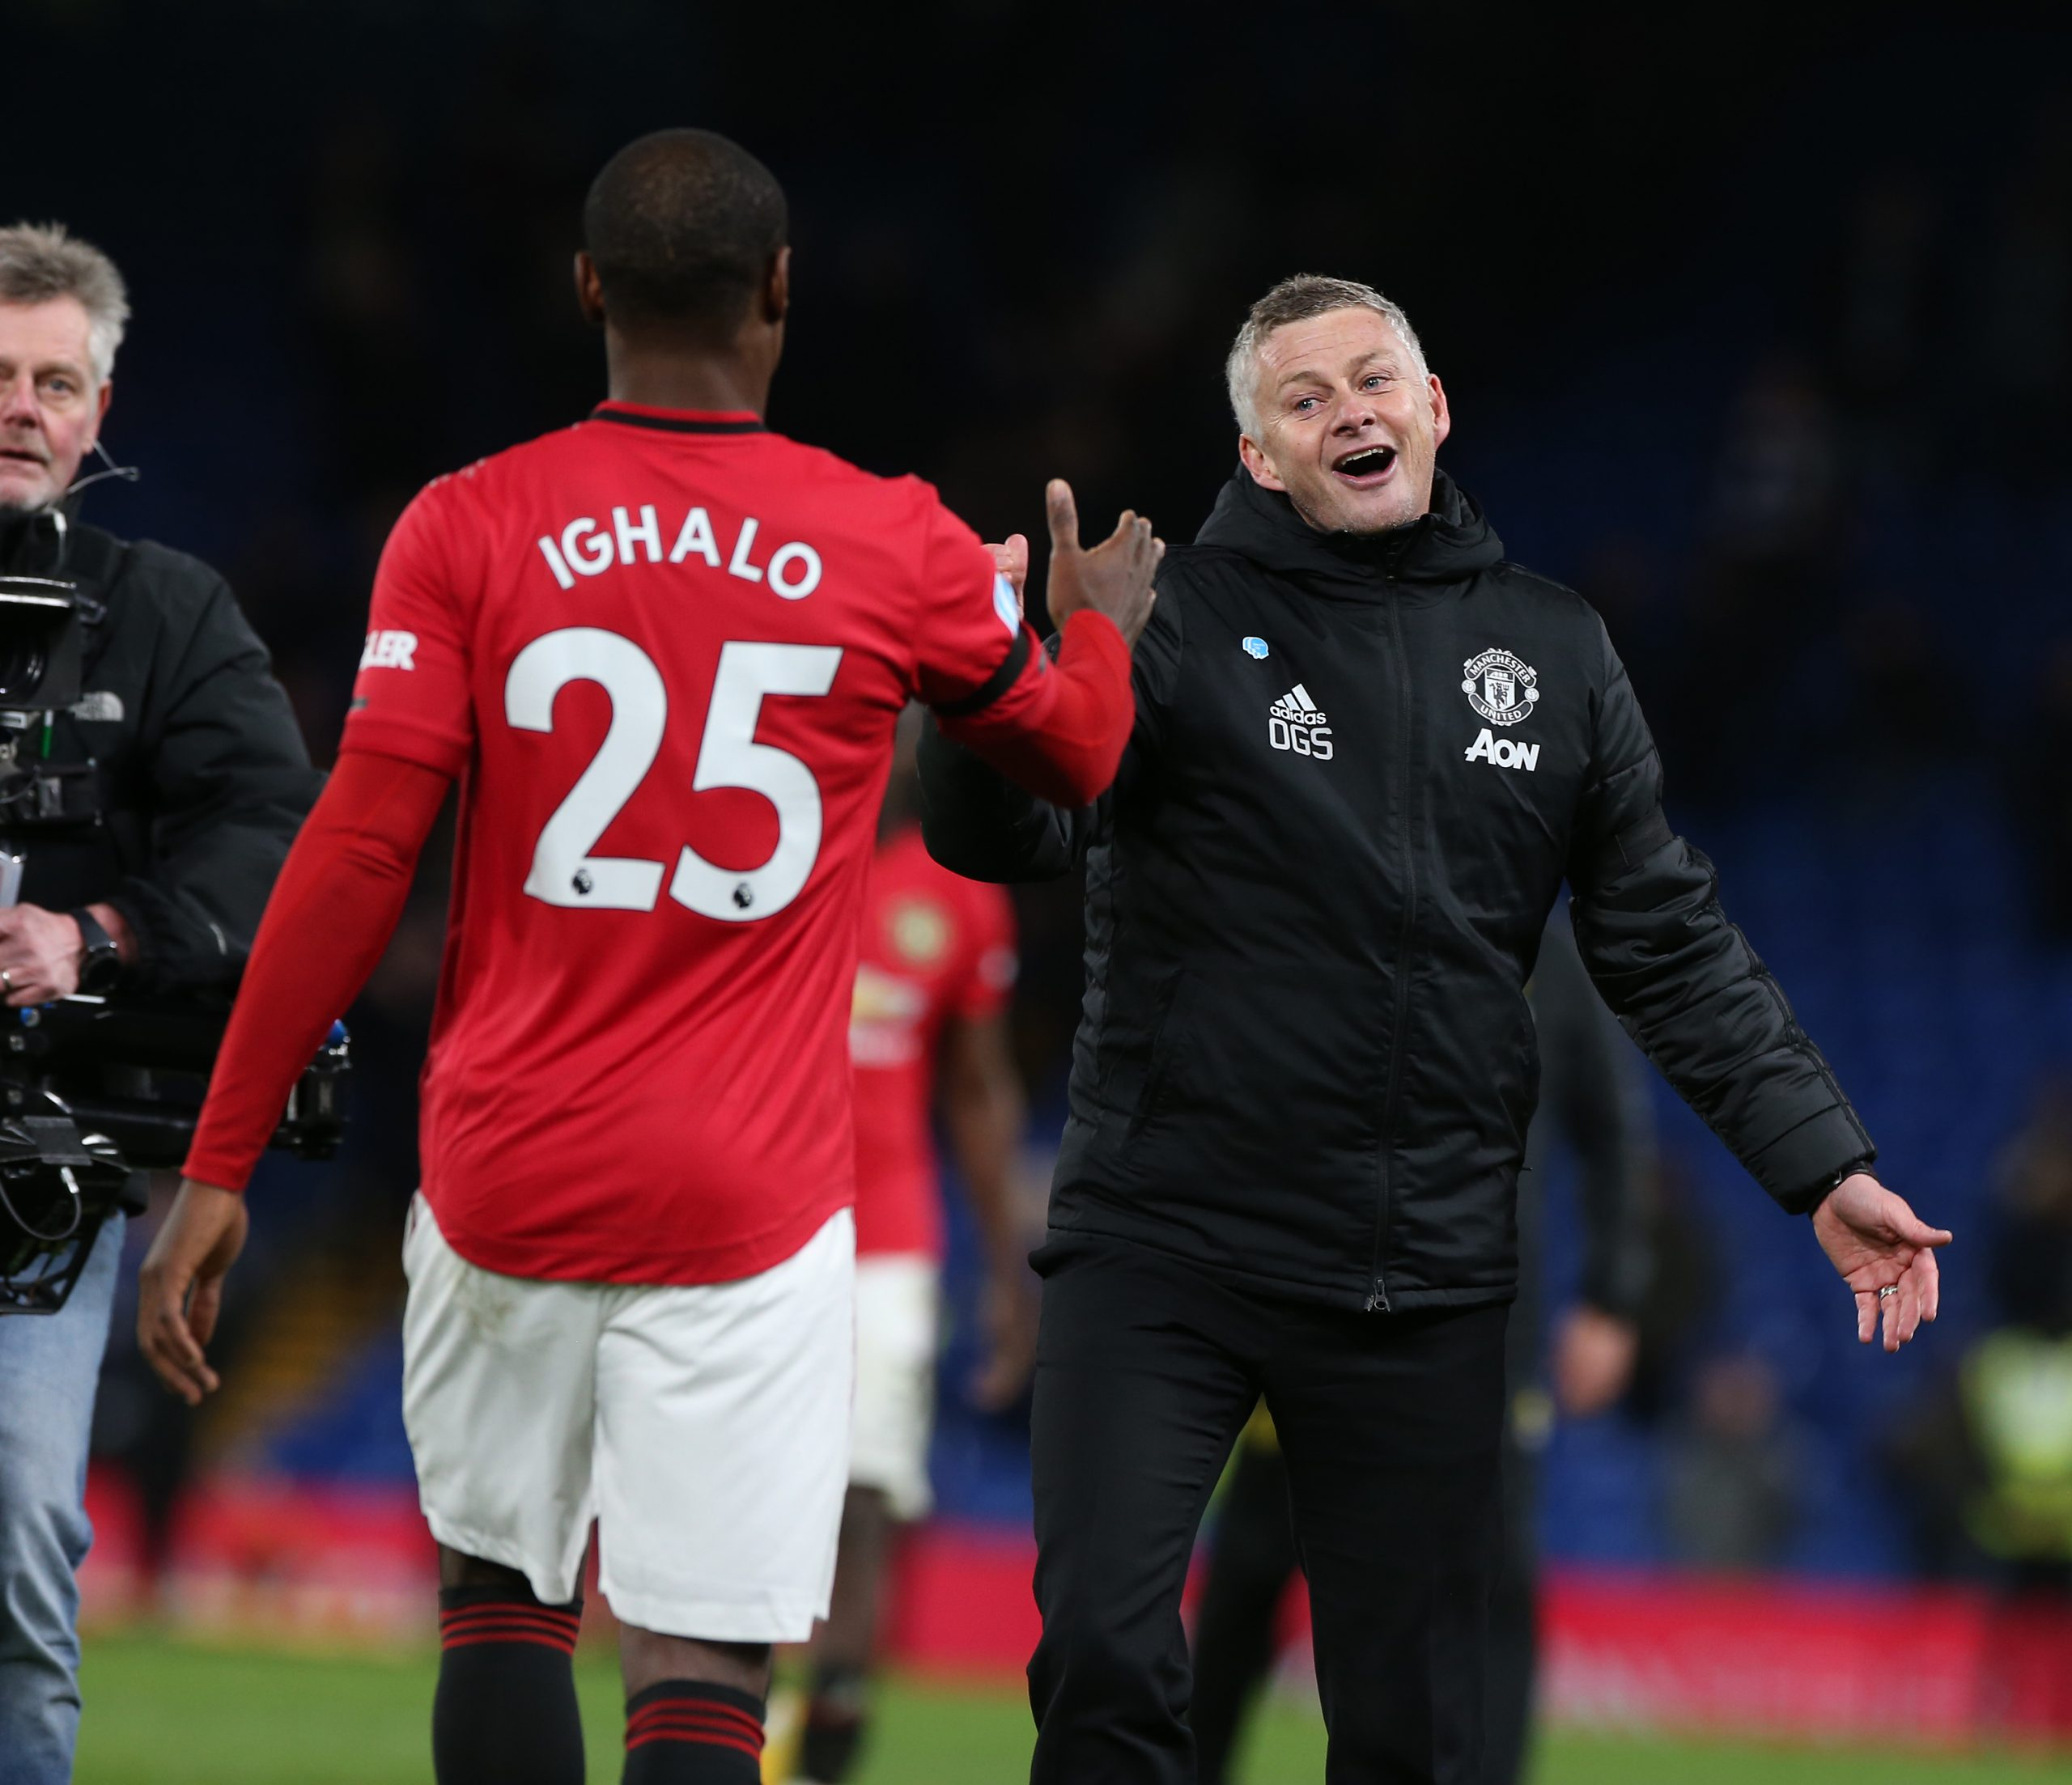 Europa League : Solskjaer To Unleash Ighalo On Club Brugge